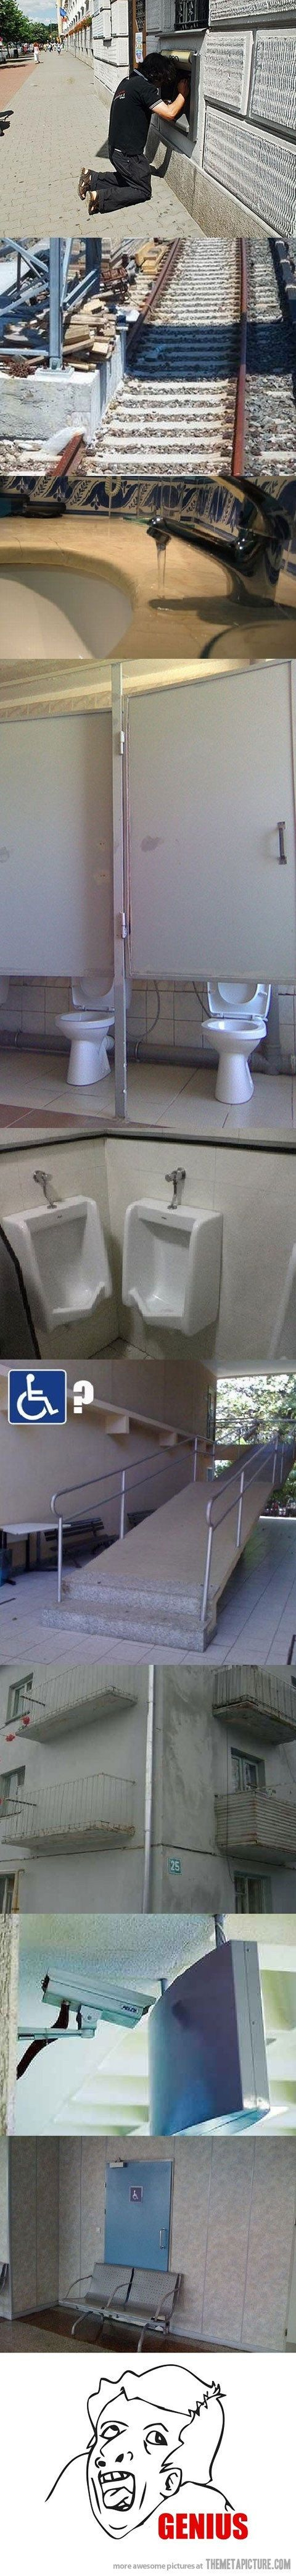 amazing construction  // funny pictures - funny photos - funny images - funny pics - funny quotes - #lol #humor #funnypictures